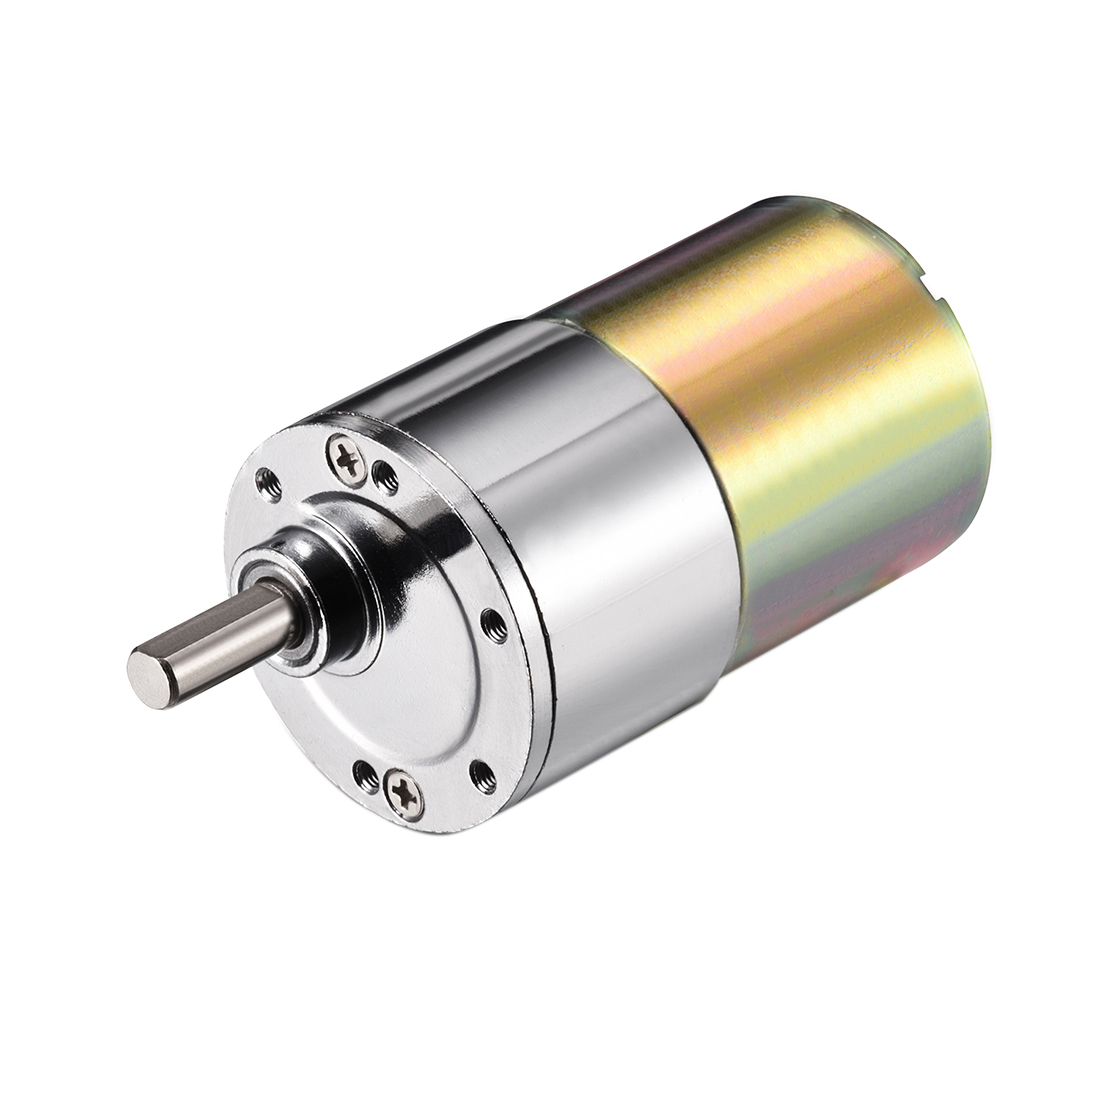 DC 24V 150RPM Micro Gear Box Motor Speed Reduction Electric Gearbox Eccentric Output Shaft